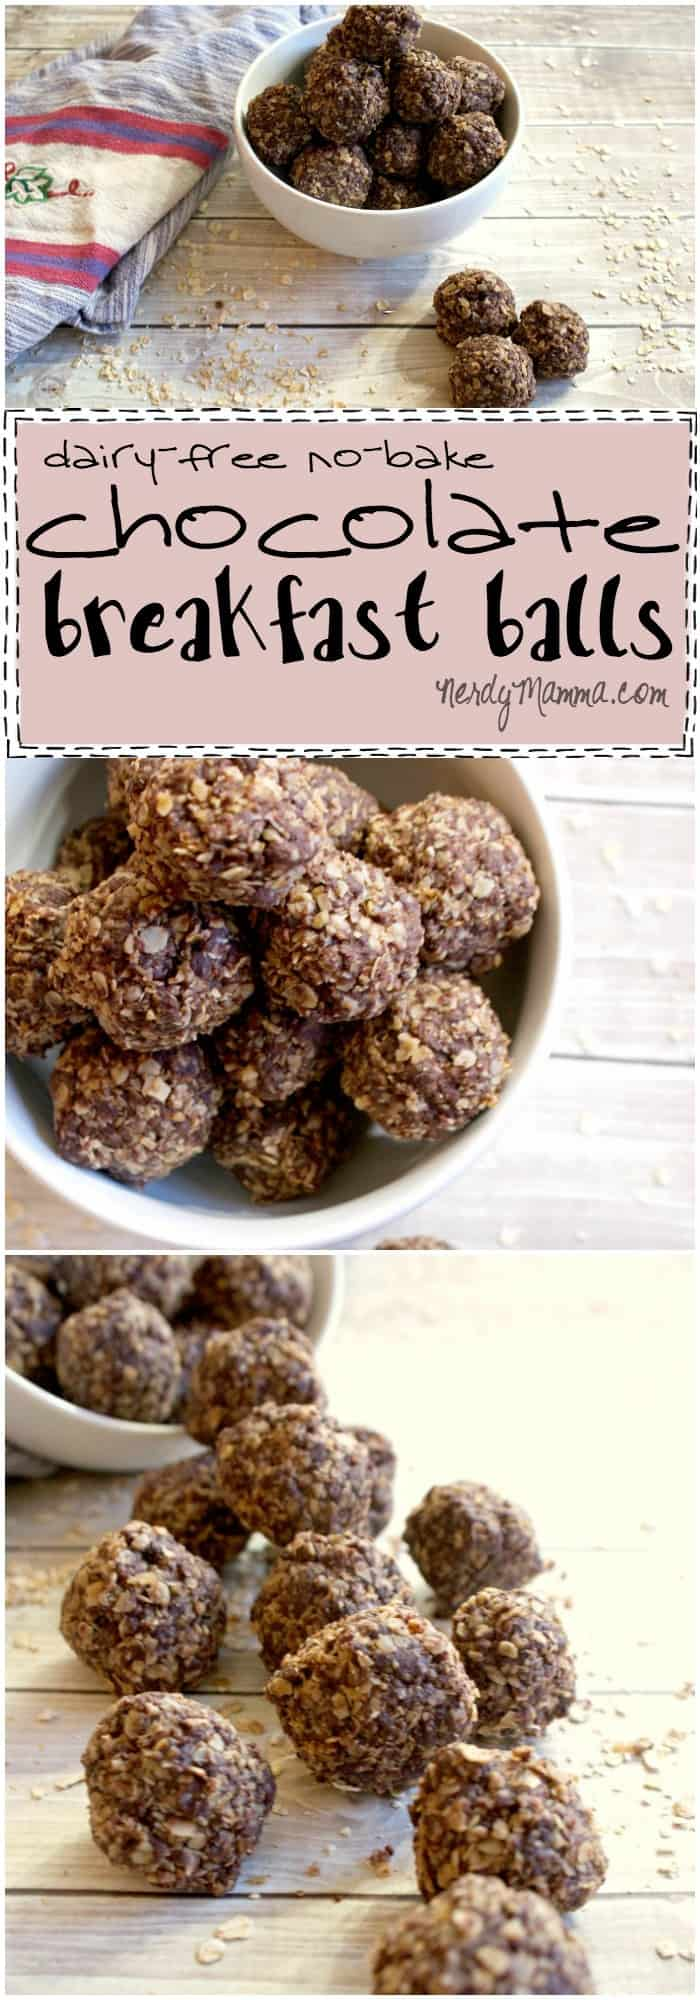 I. Am. In. Love. These no-bake, dairy-free chocolate breakfast balls are easy, yummy and totally decadent. I mean, chocolate for breakfast!